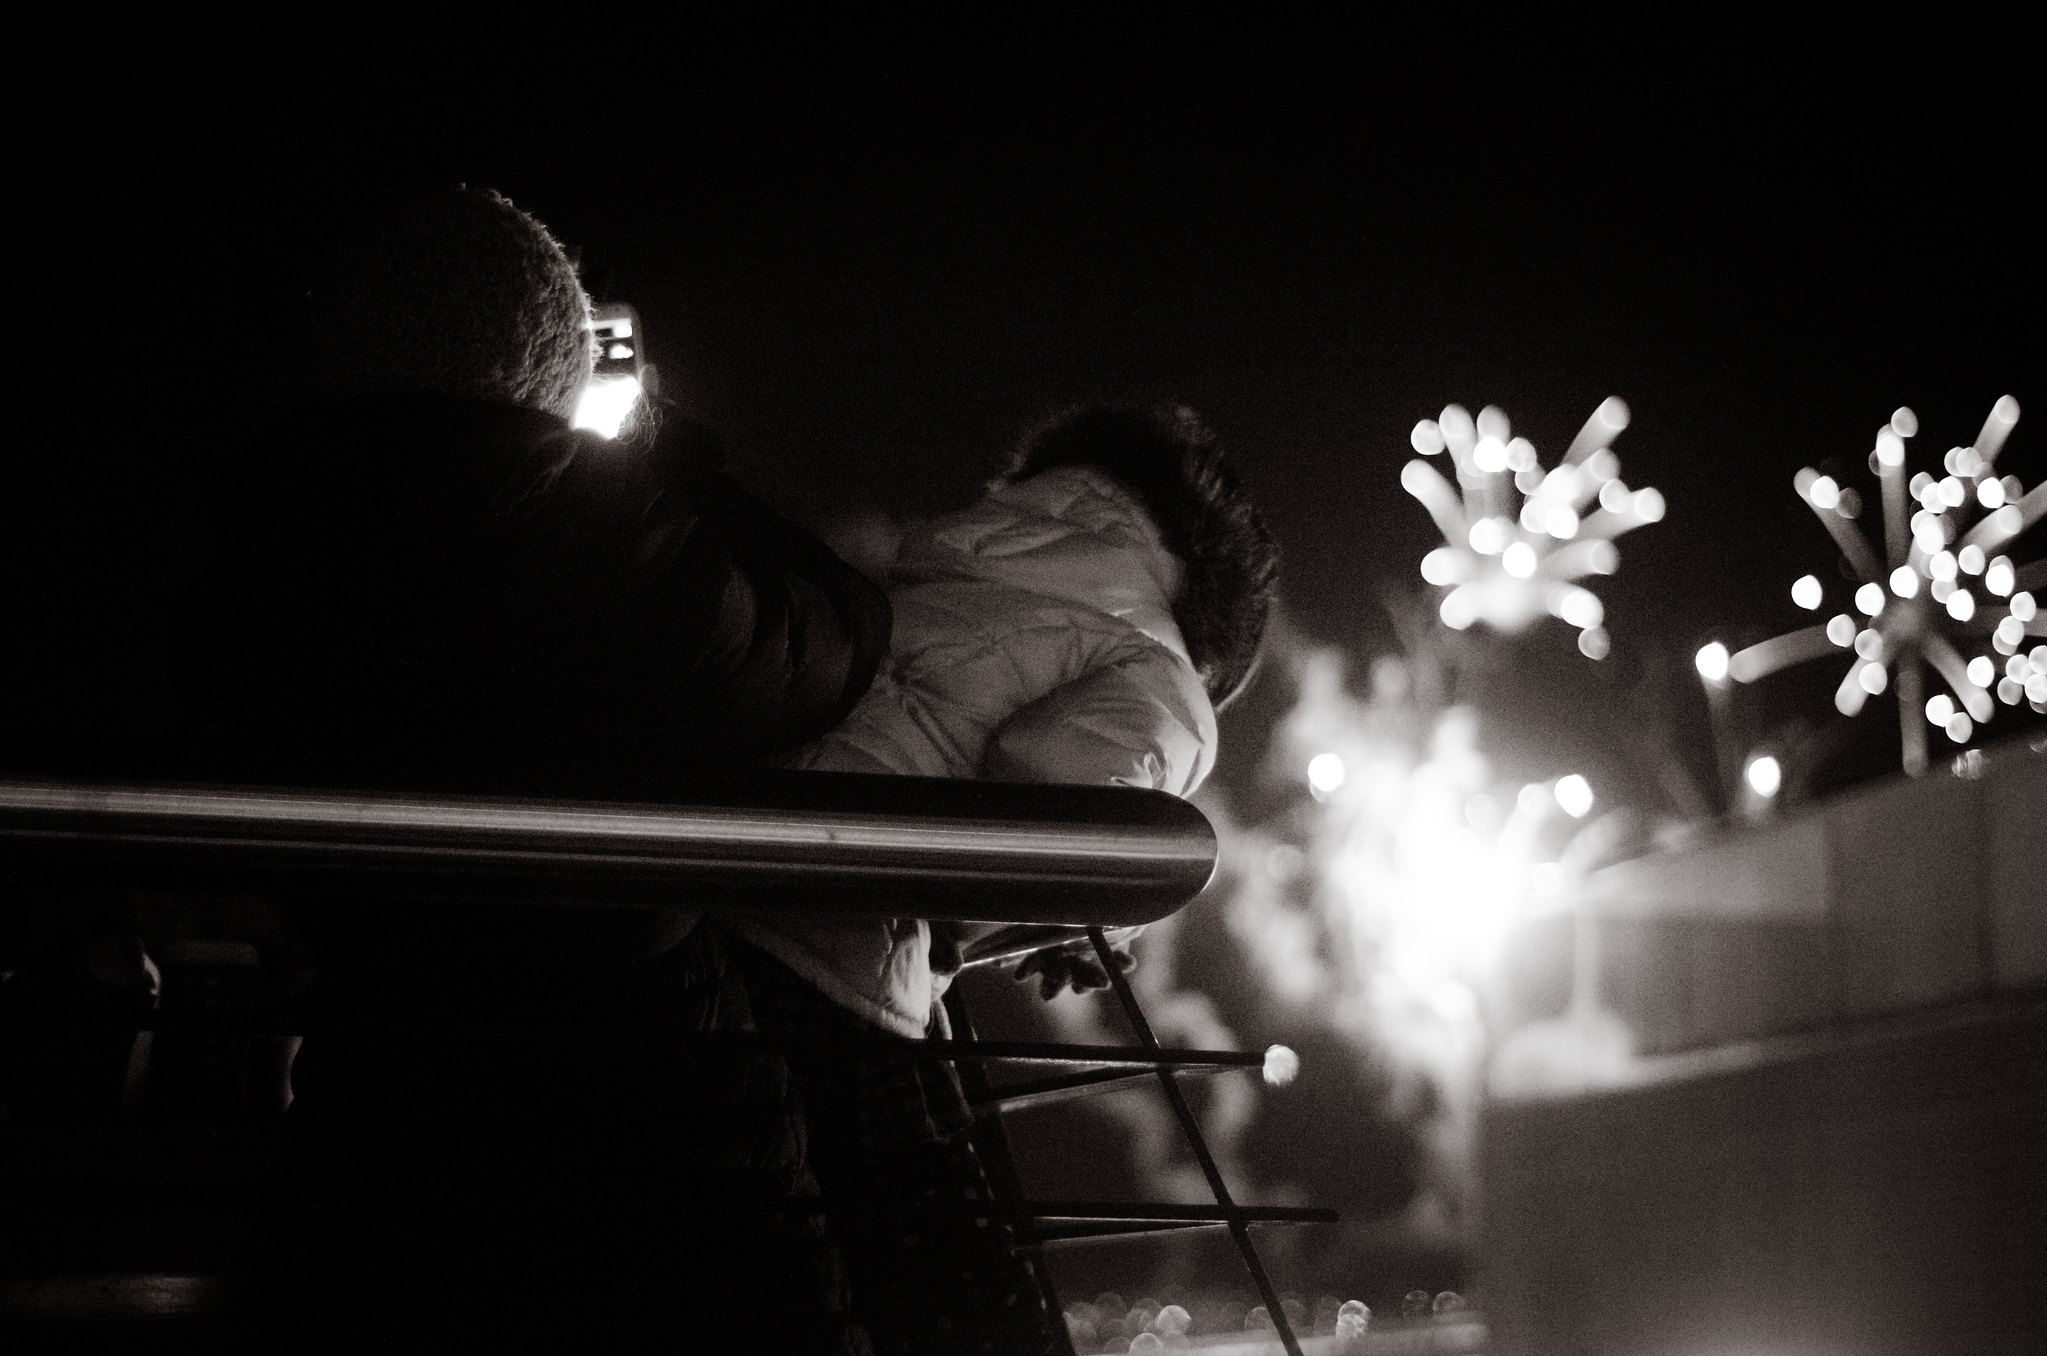 A New Year's Experience